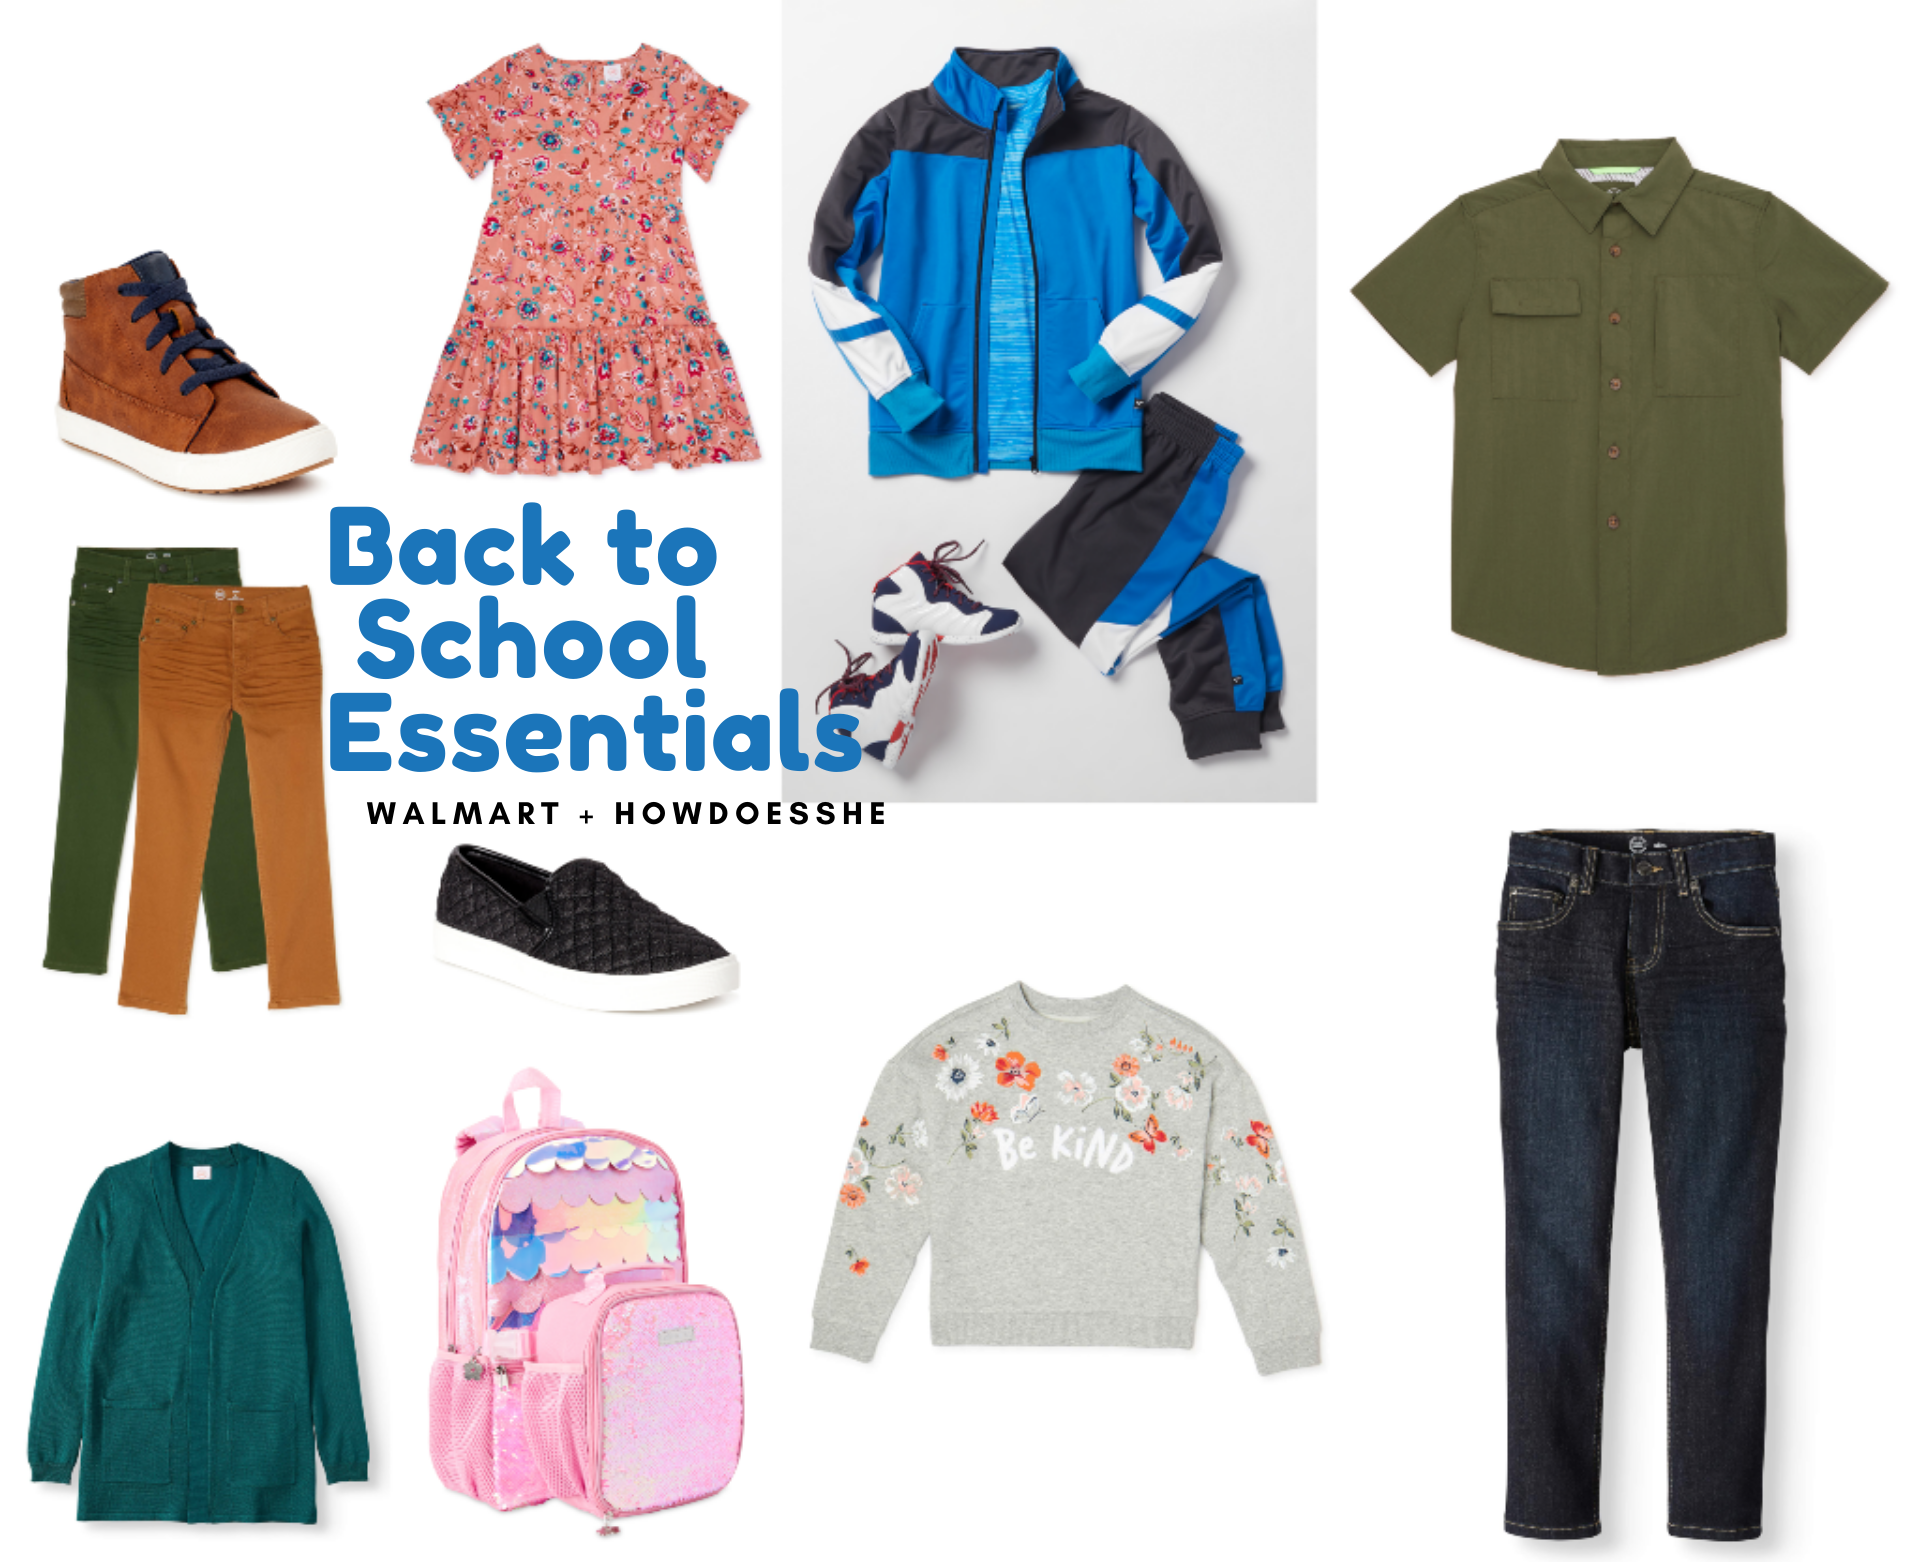 Back to School Wardrobe Essentials